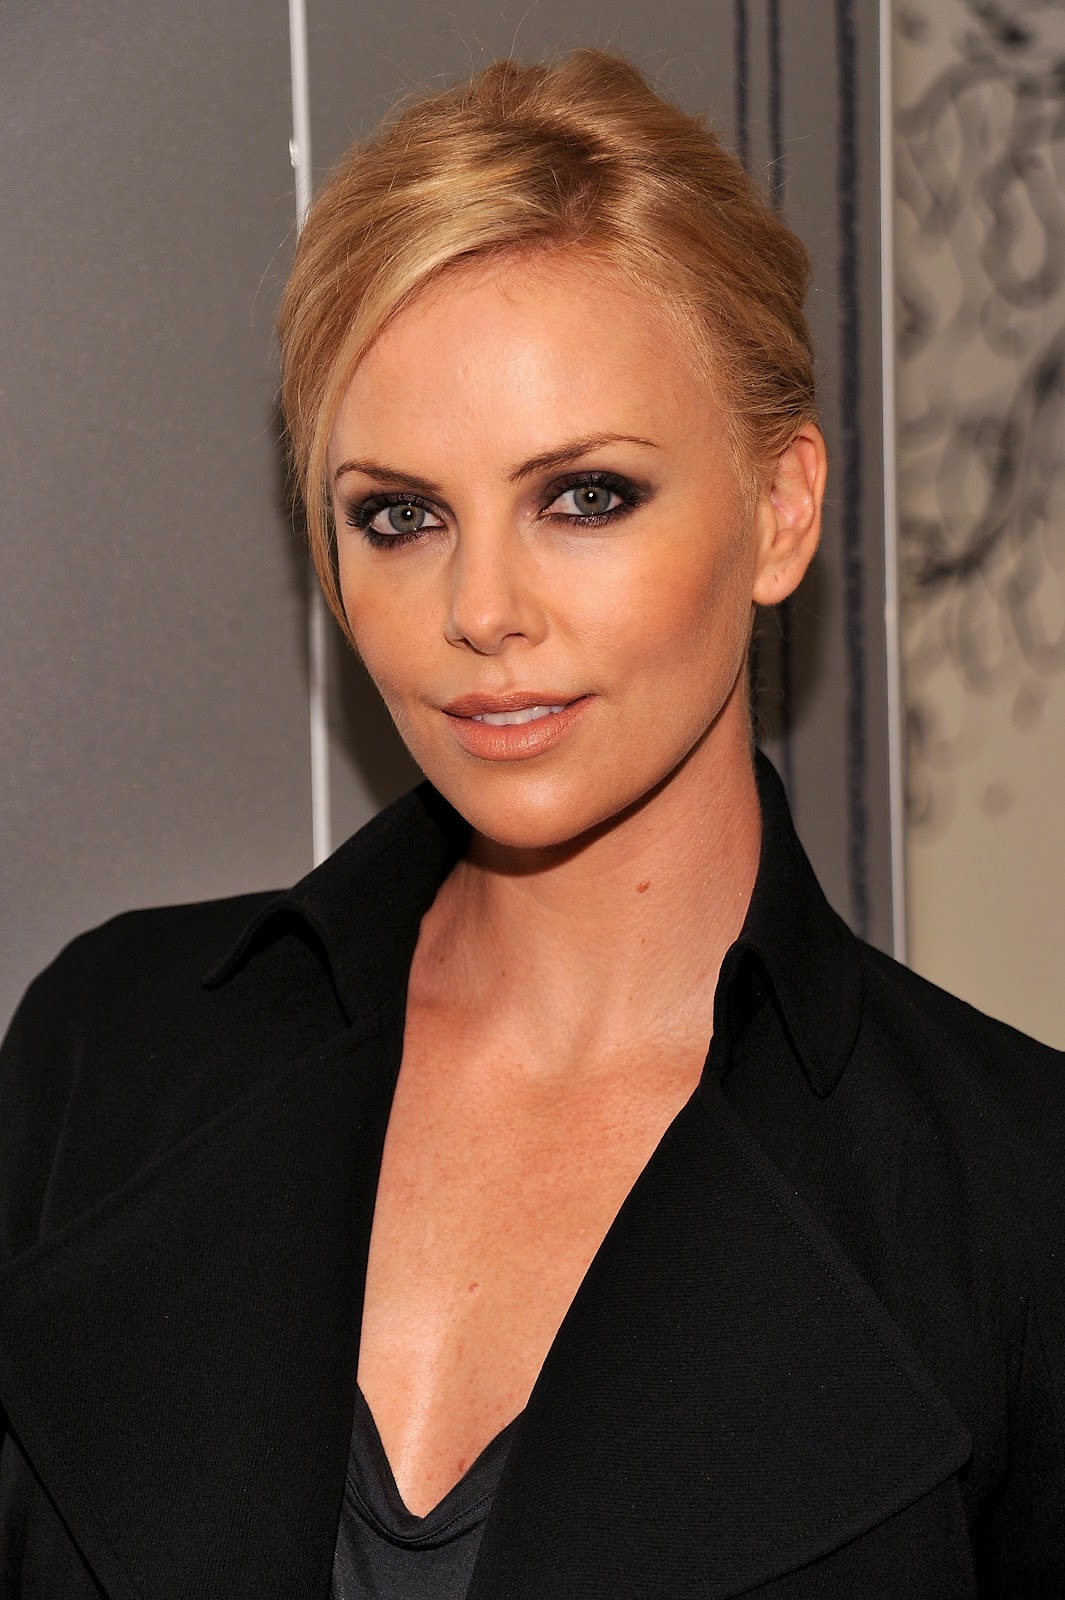 Charlize Theron In Versace For British Vogue: Charlize Theron Pictures Gallery (13)